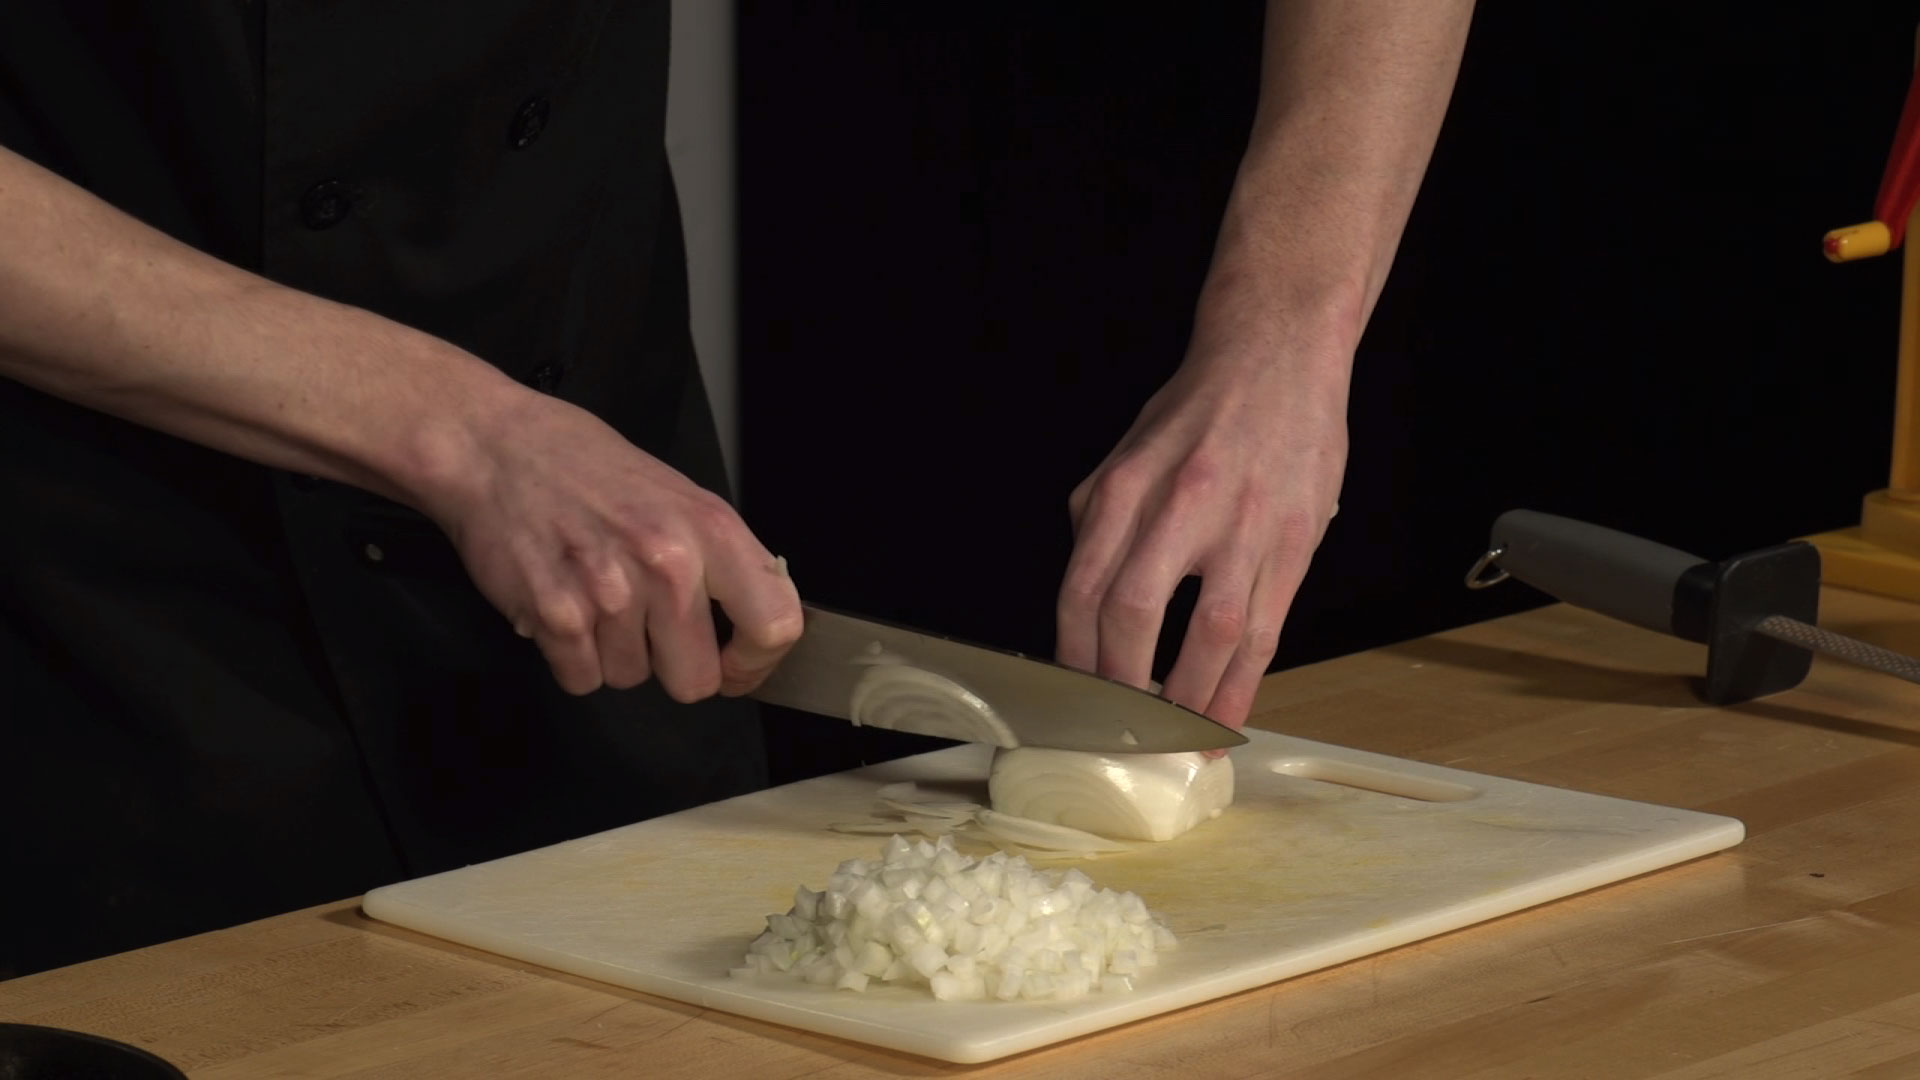 knife cutting through an onion